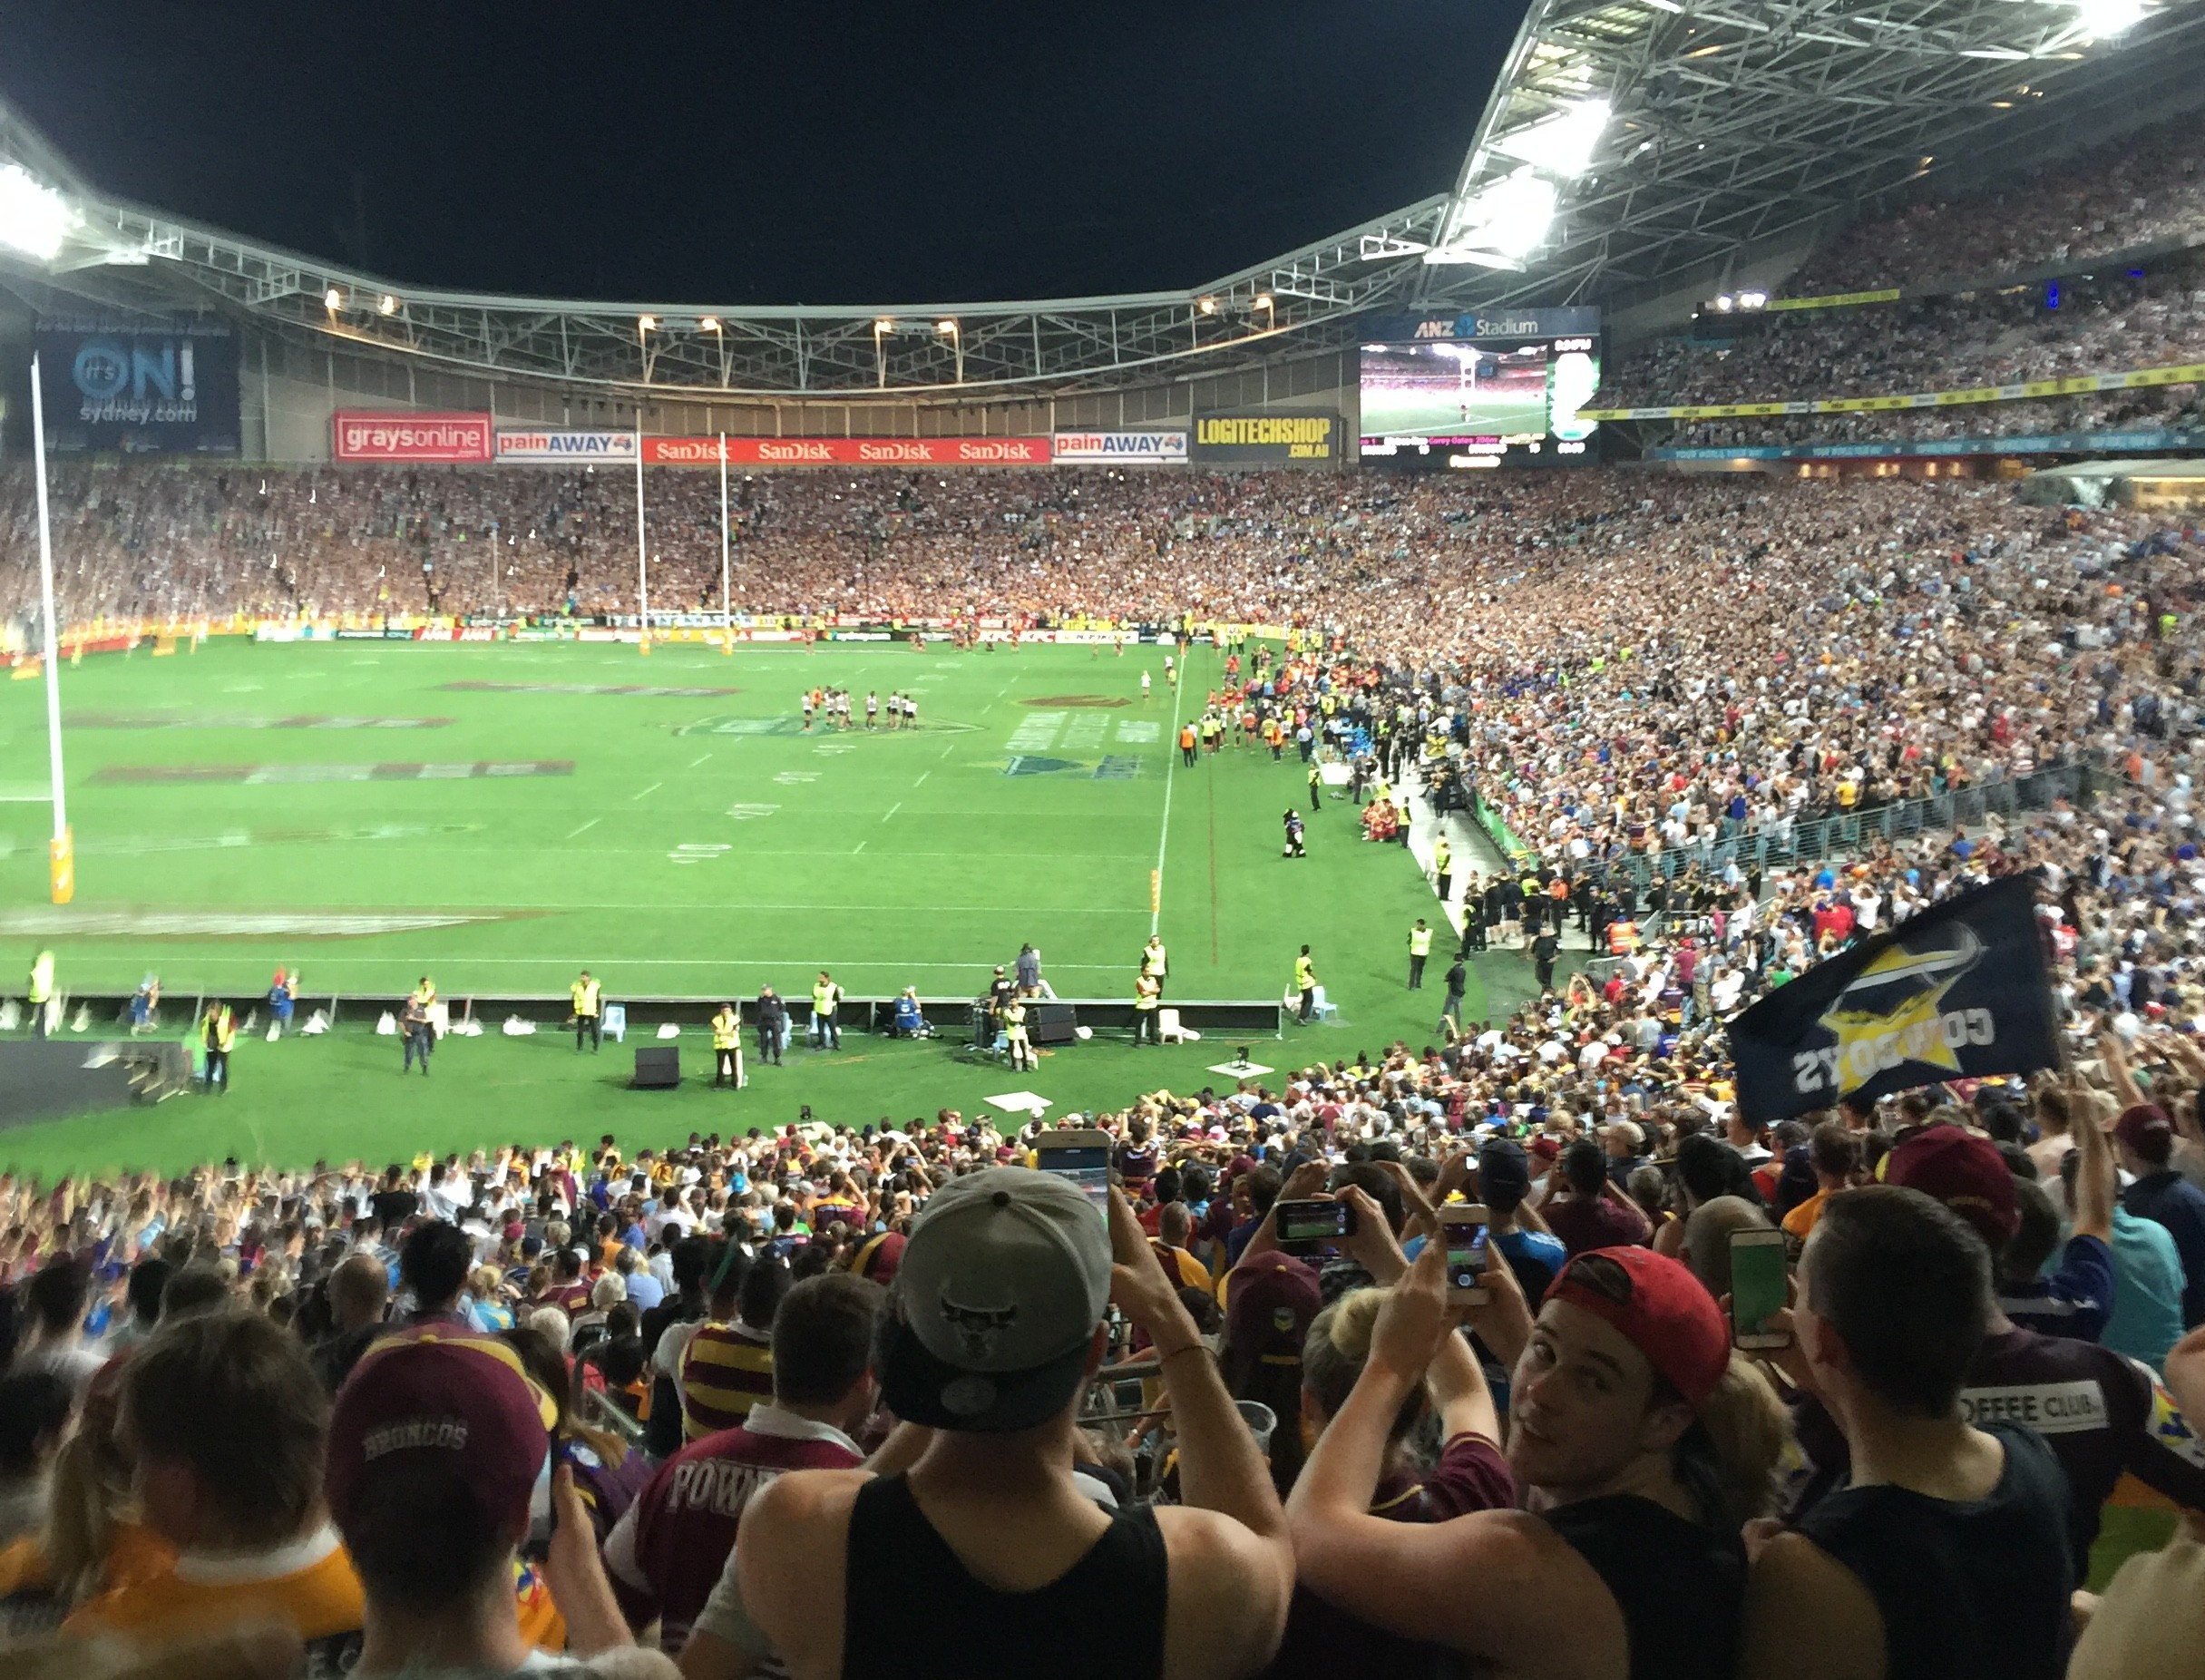 """Hey GreenSocks, did you mow this lawn?"" says Mark Cantoni from Outbound at the NRL Grand Final"